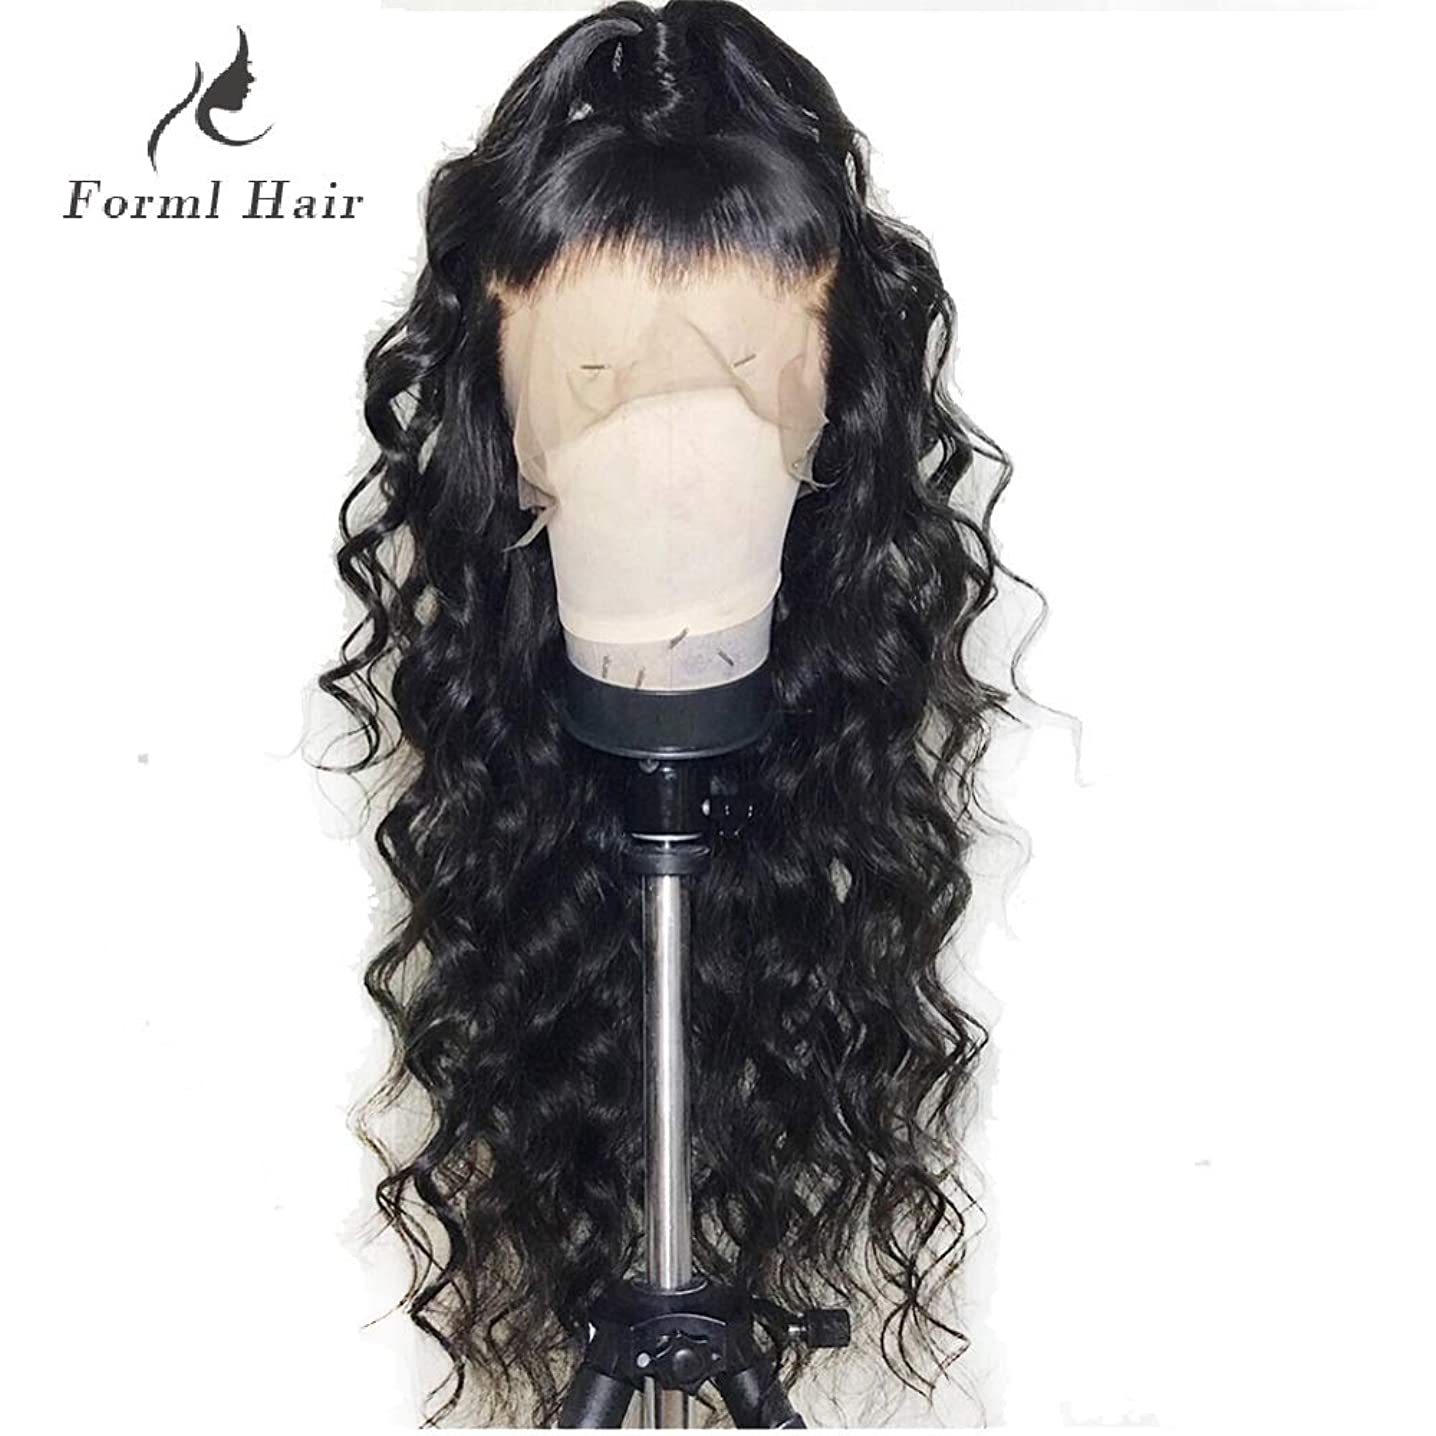 Formal hairLoose Curly Wave Lace Front Human Hair Wigs-Glueless 130% Density Brazilian Virgin Remy Wigs with Baby Hair For Black Woman 16Inch Natural Color dgkkfexet